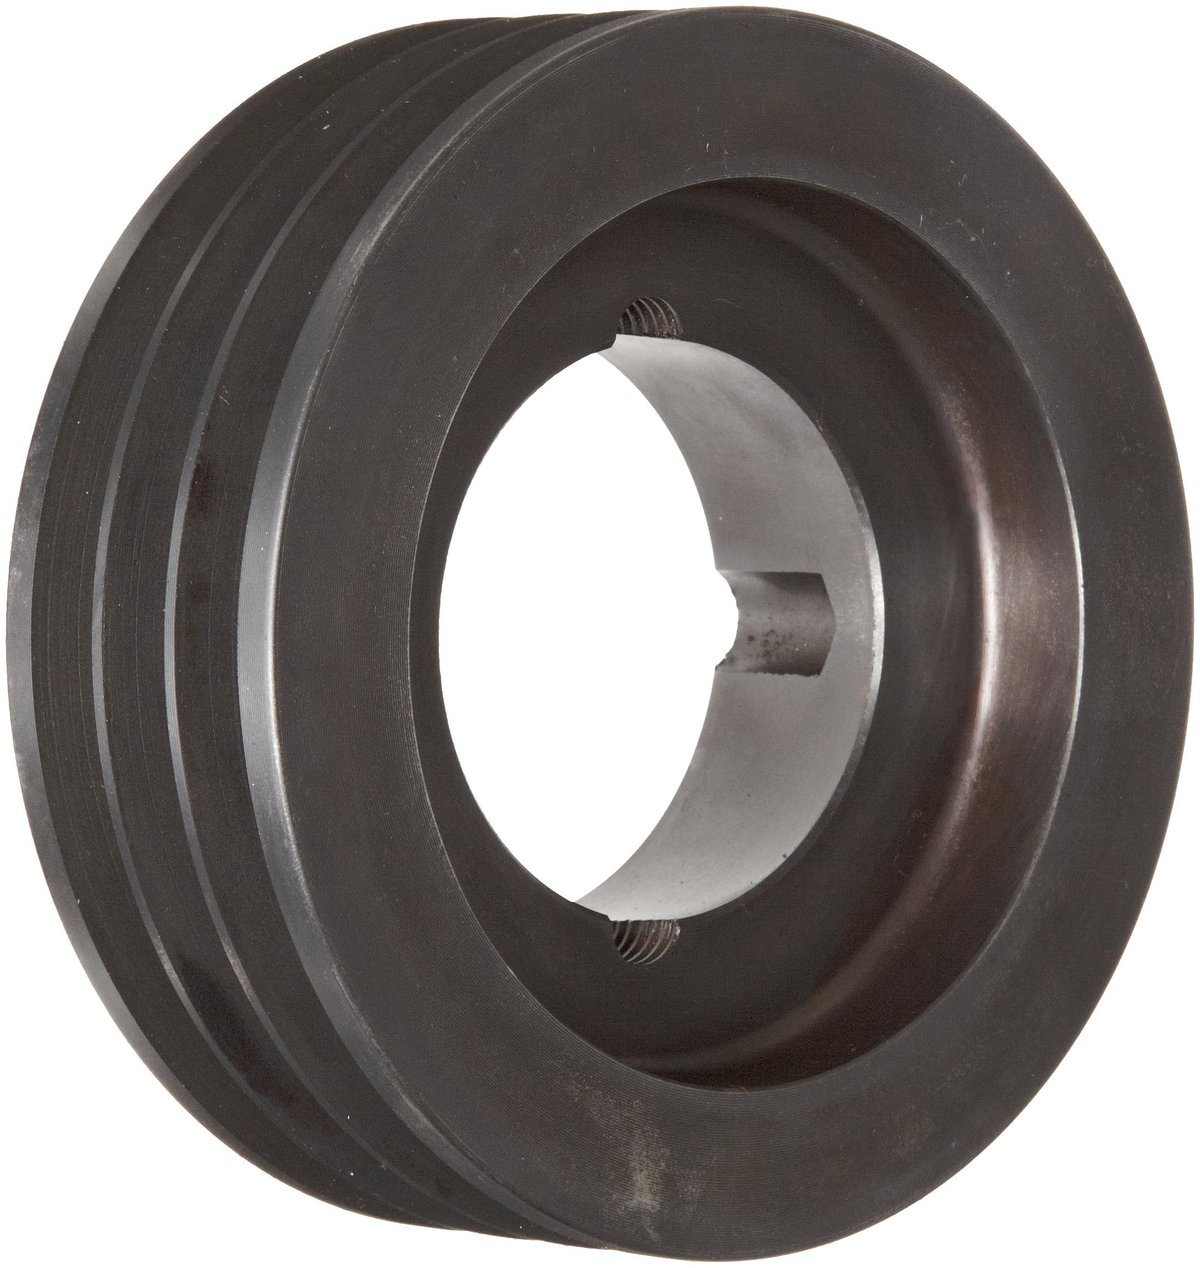 TL SPC710X3.4040 Ametric Metric 710 mm Outside Diameter, 3 Groove SPC/22 Dynamically Balanced Cast Iron V-Belt Pulley/Sheave,for 4040 Taper Lock Bushing, (Mfg Code 1-013)